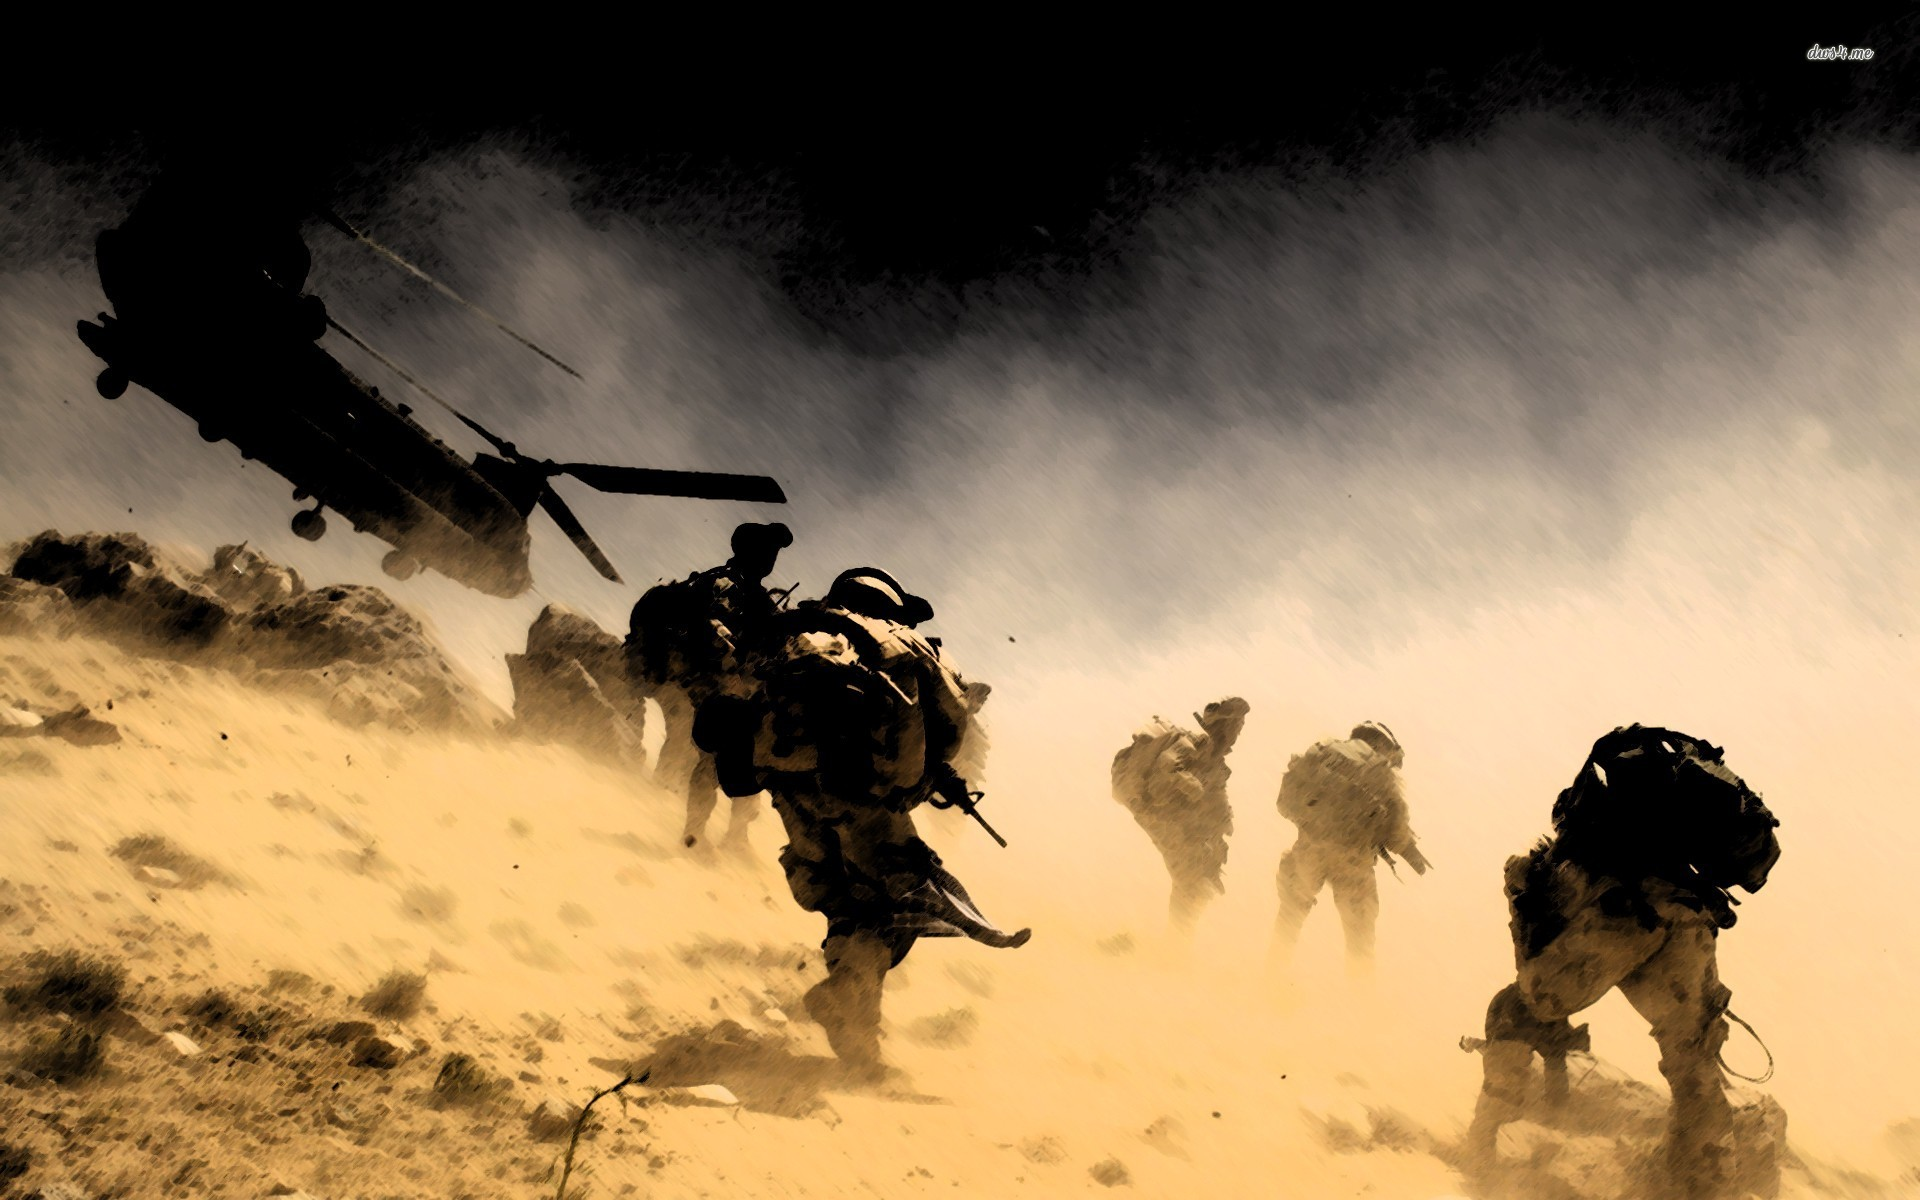 76 cool military wallpapers on wallpapersafari - Awesome army wallpapers ...